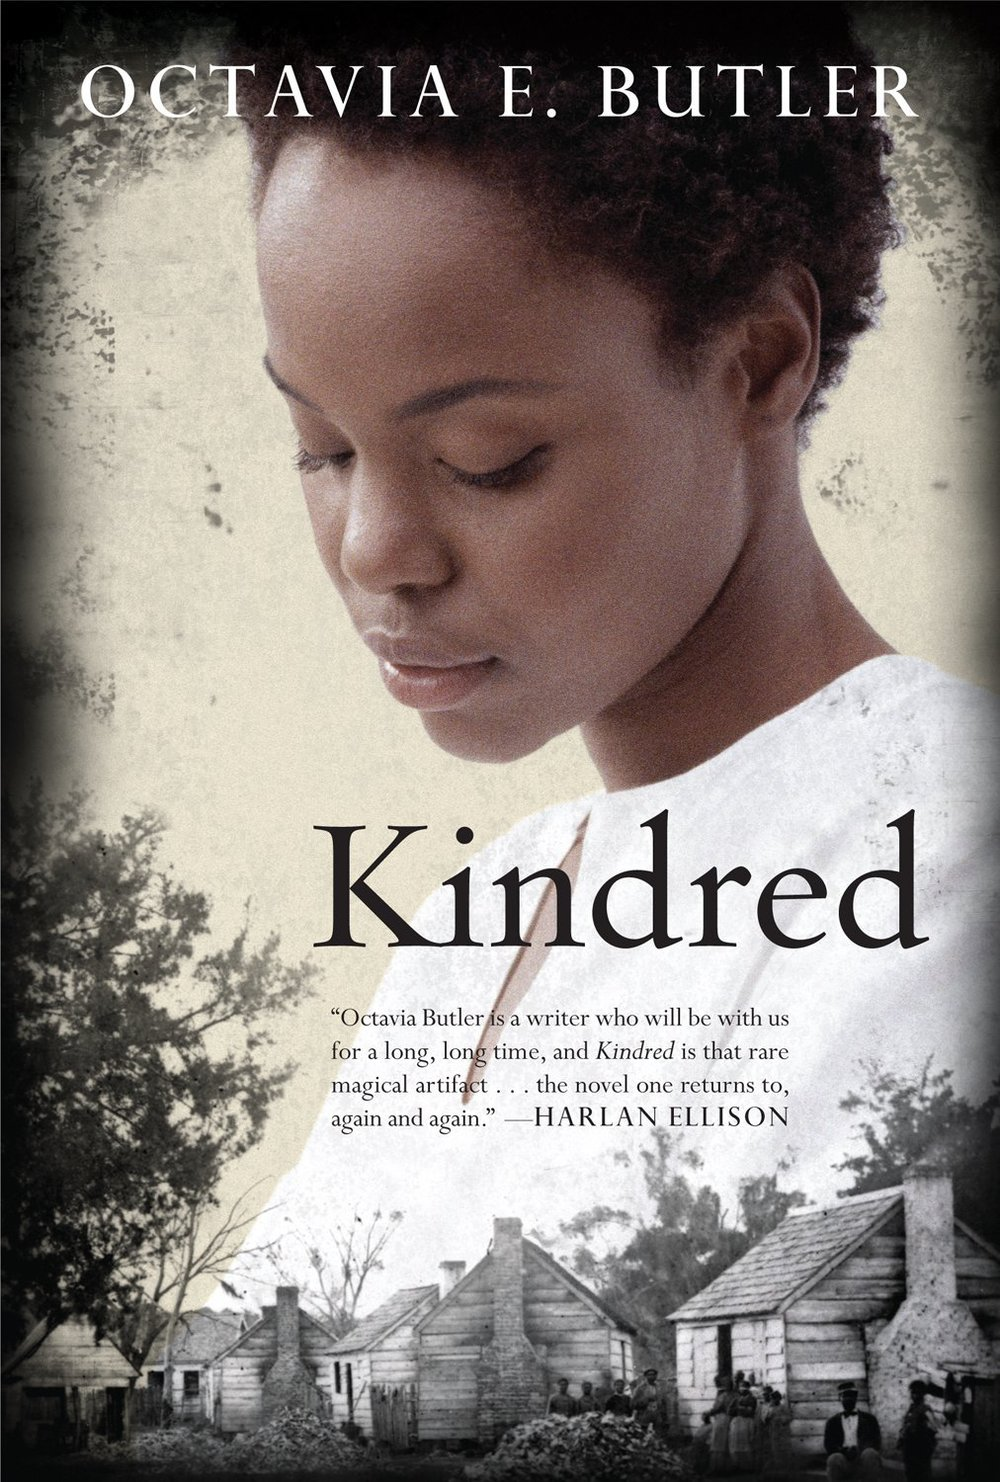 Kindred by Octavia Butler Amazon | Goodreads